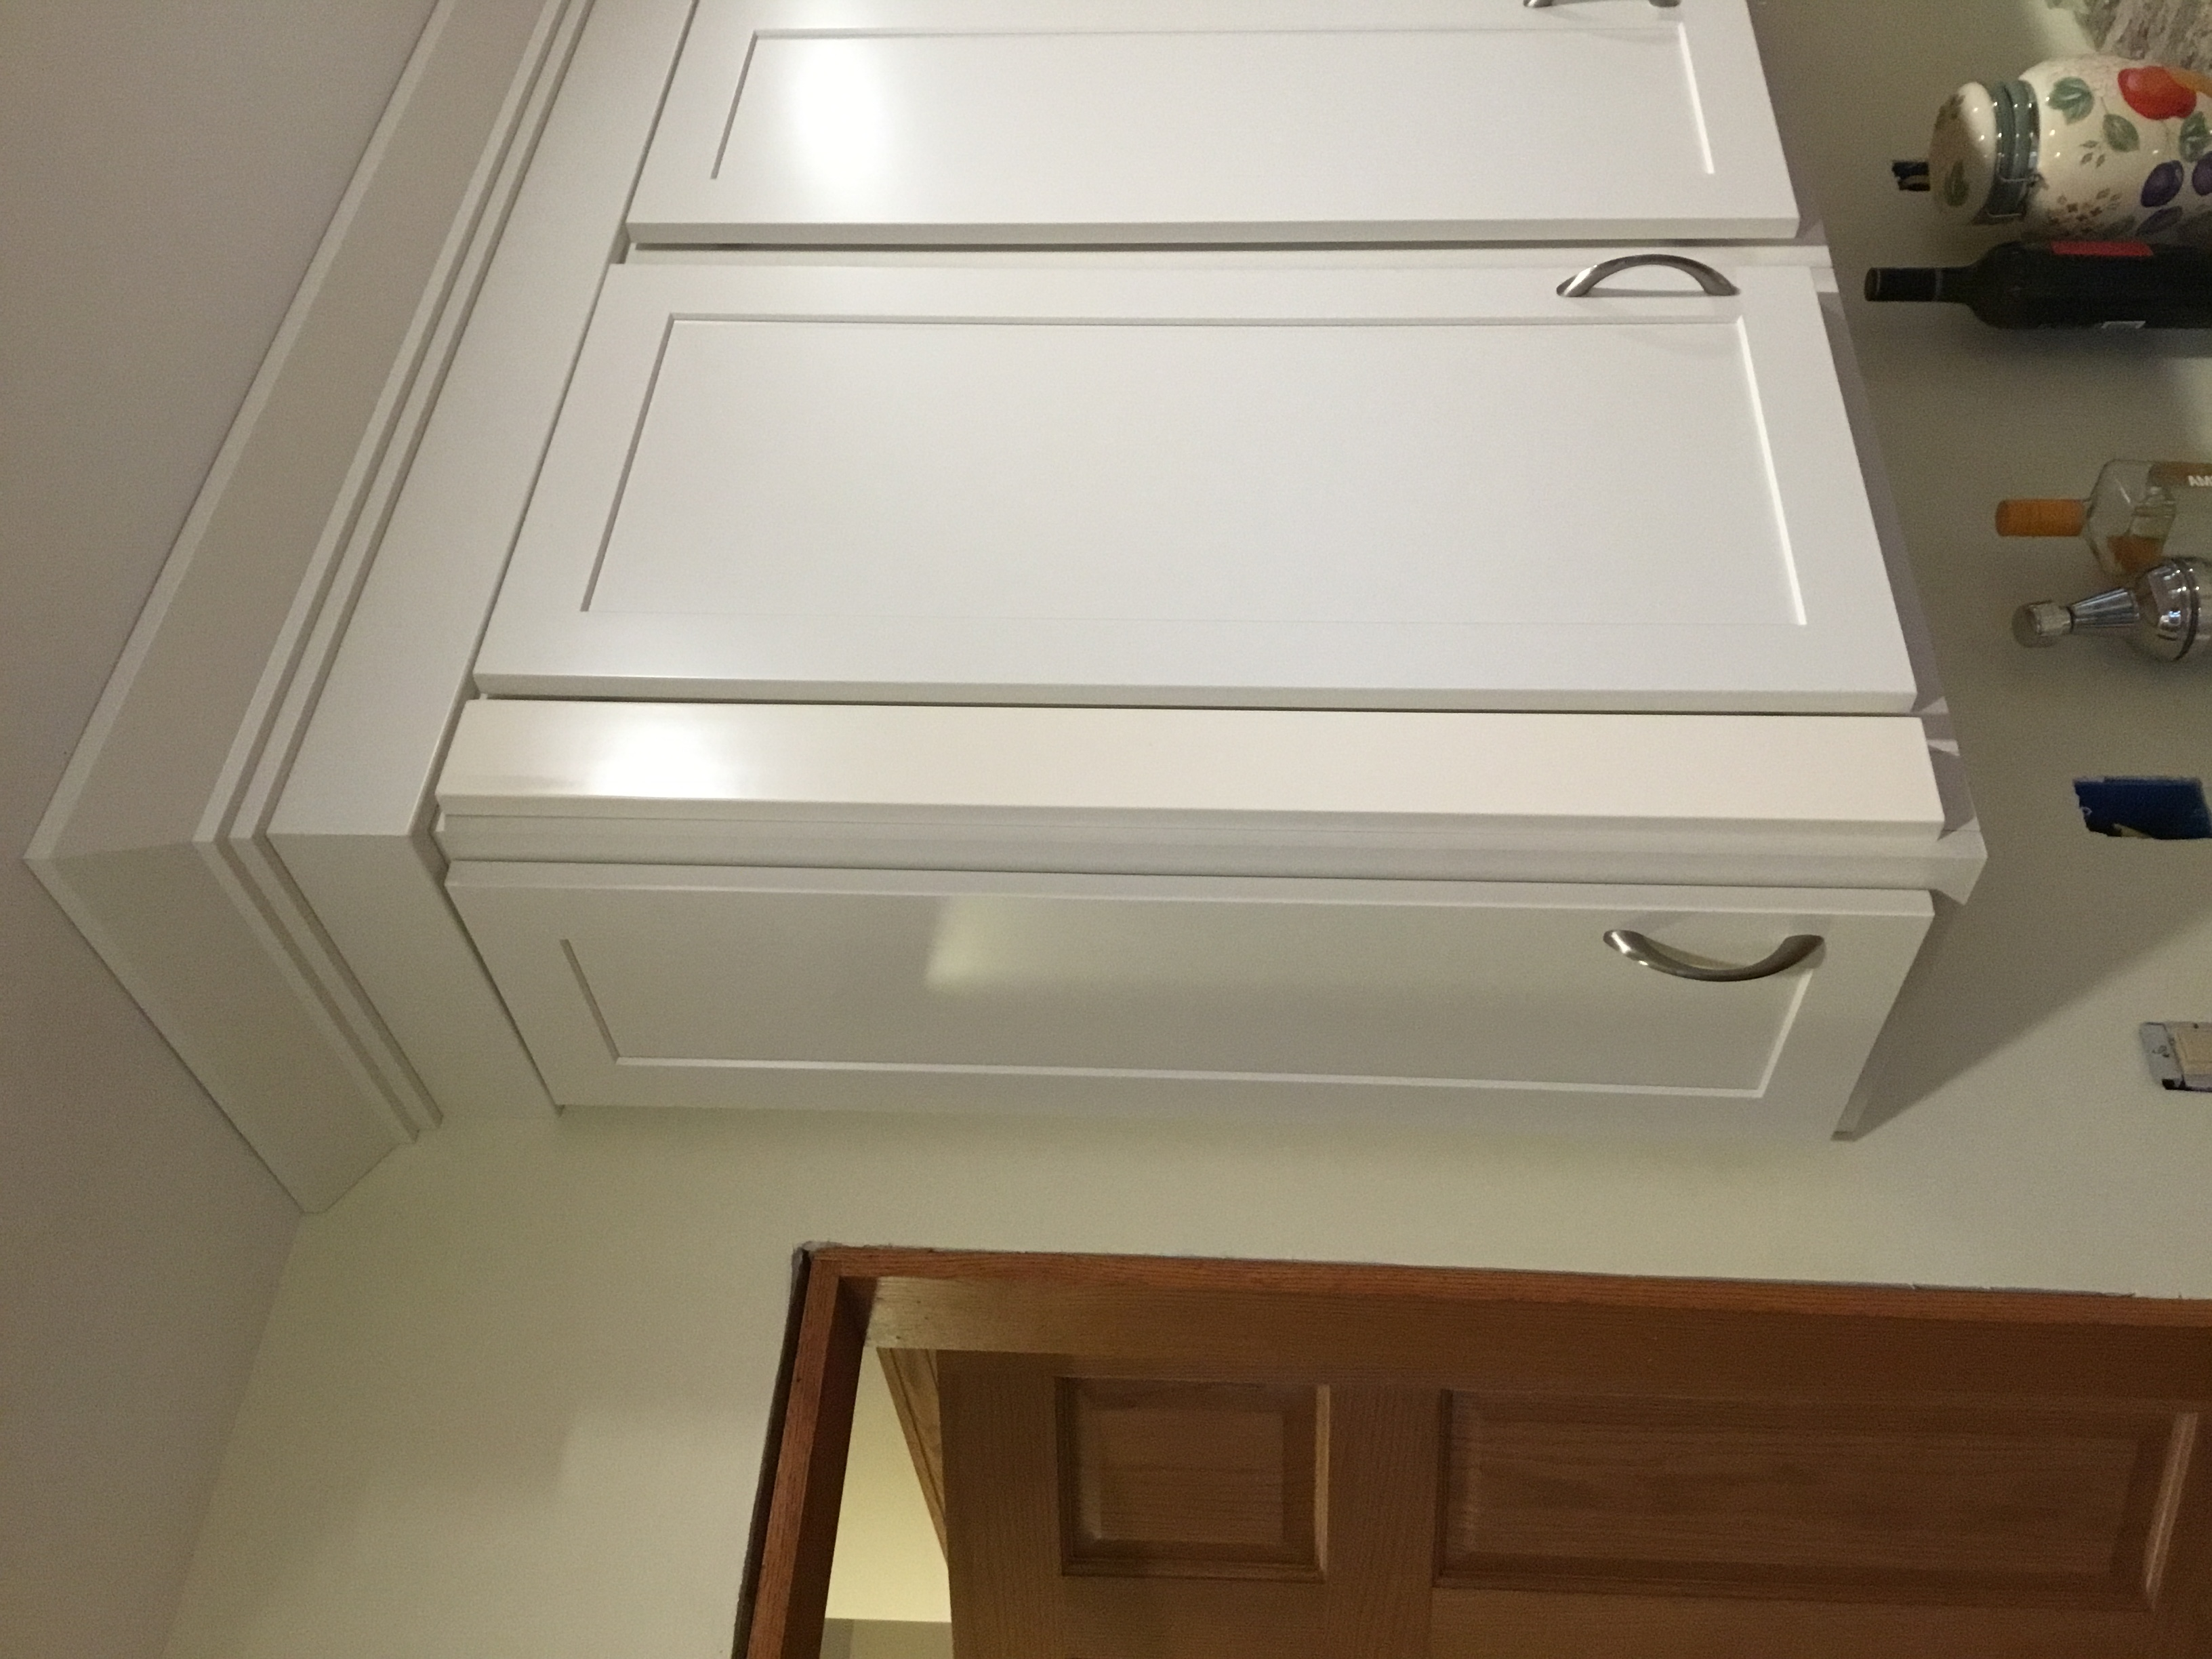 End Cabinet-Key Storage